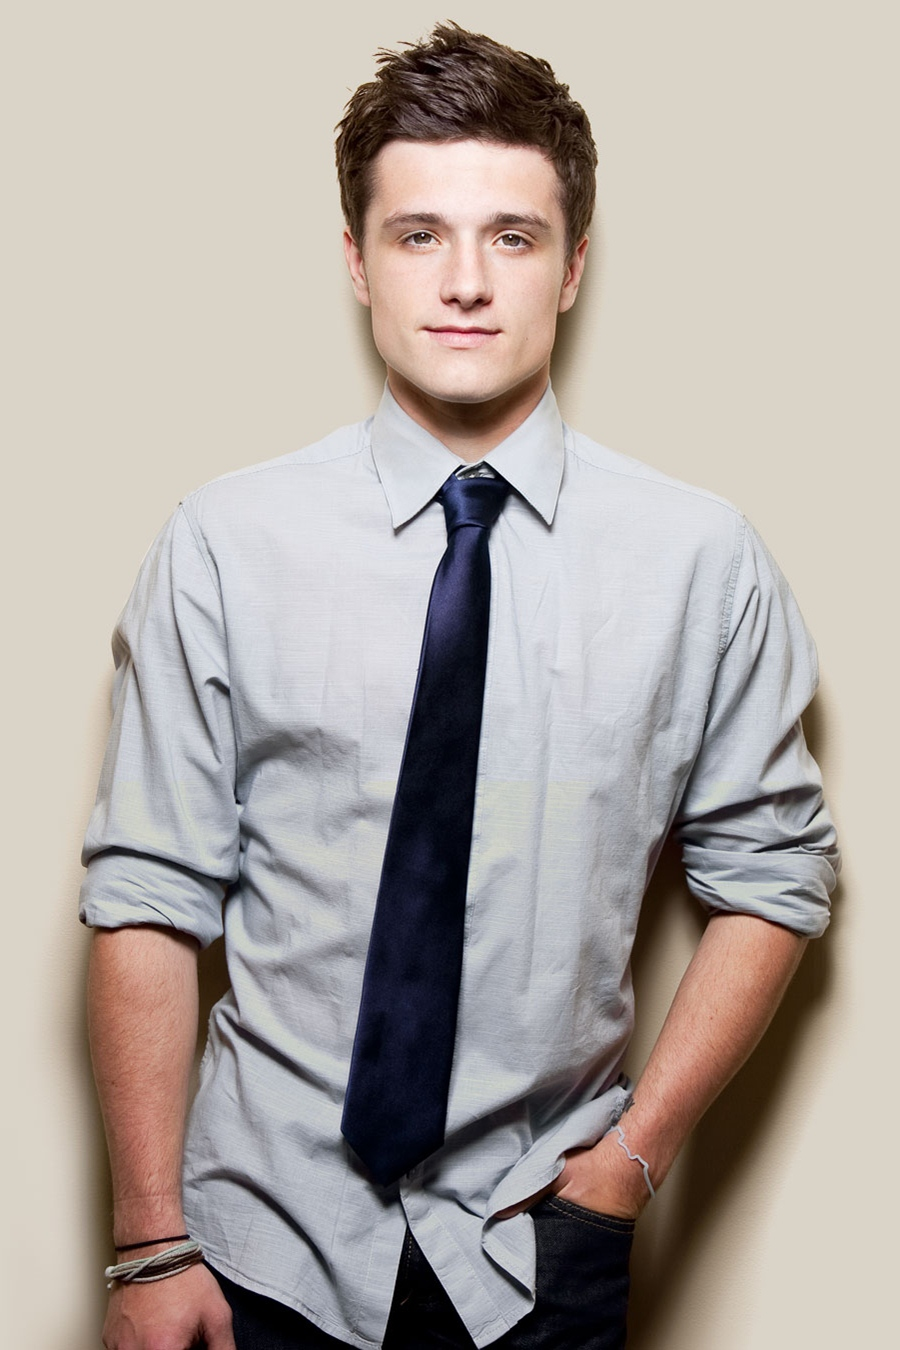 Josh Hutcherson Latest Profile and Photographs 2012 ...